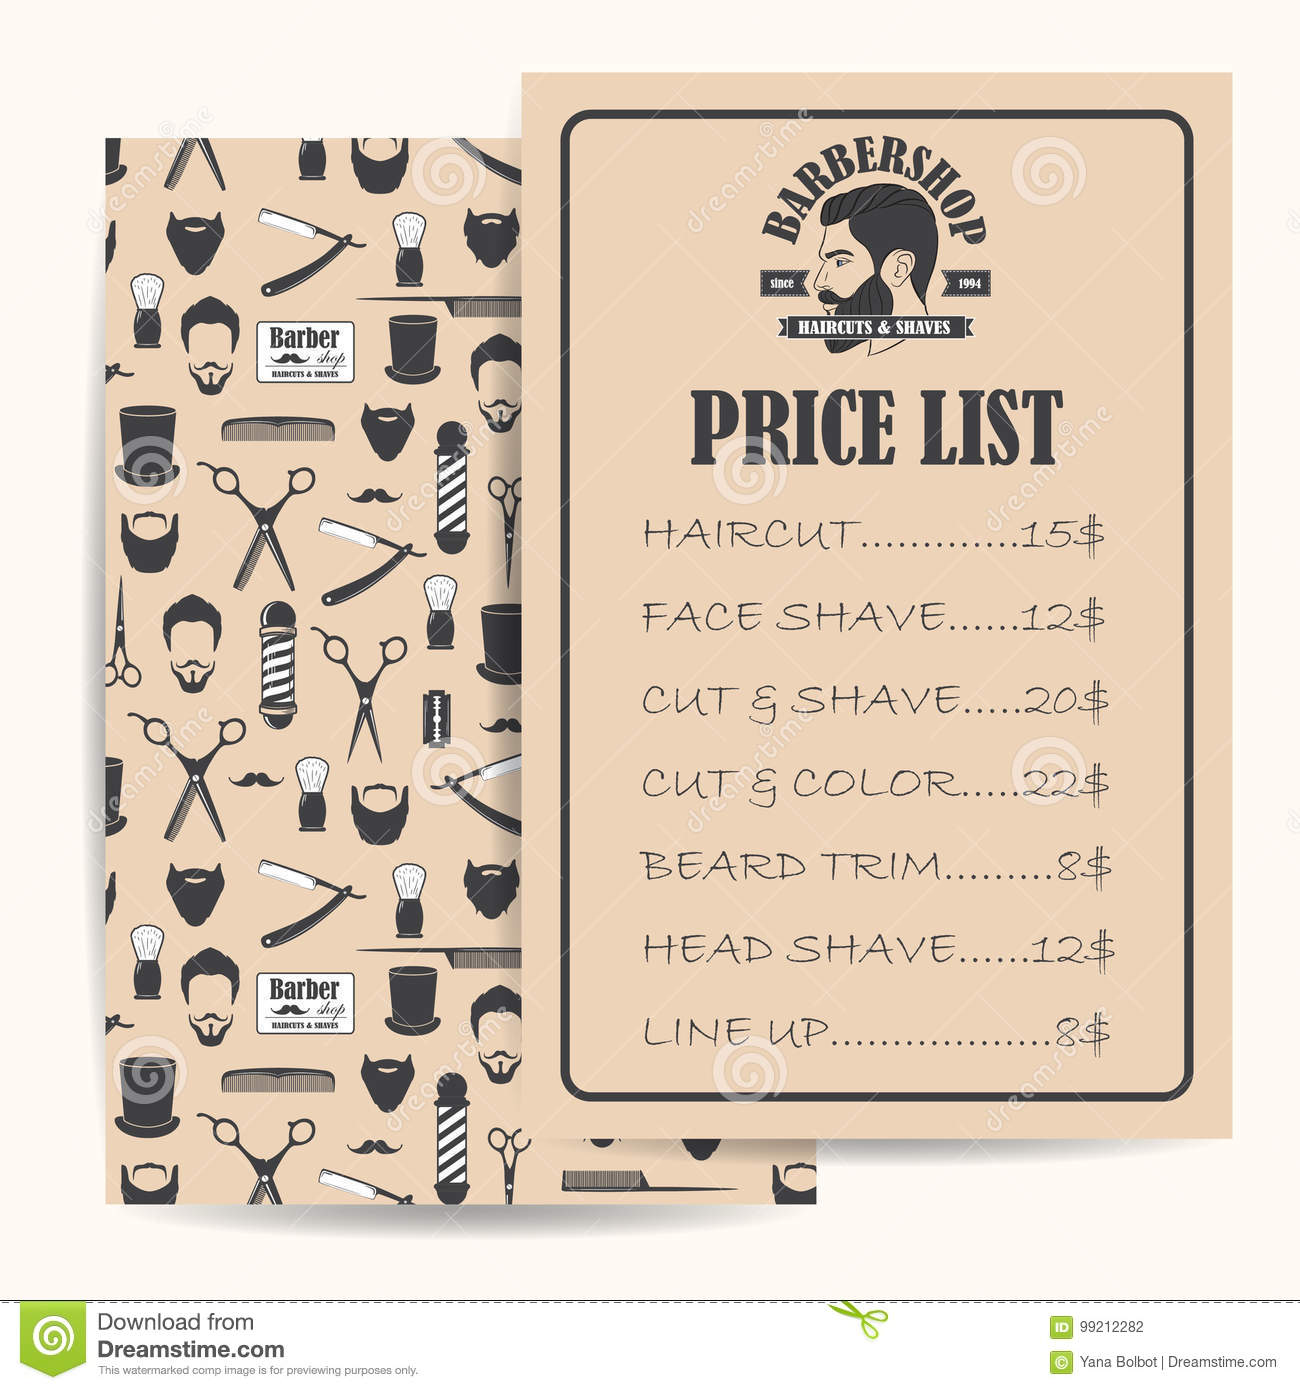 barber shop price or brochure list with prices at the hairstyles and